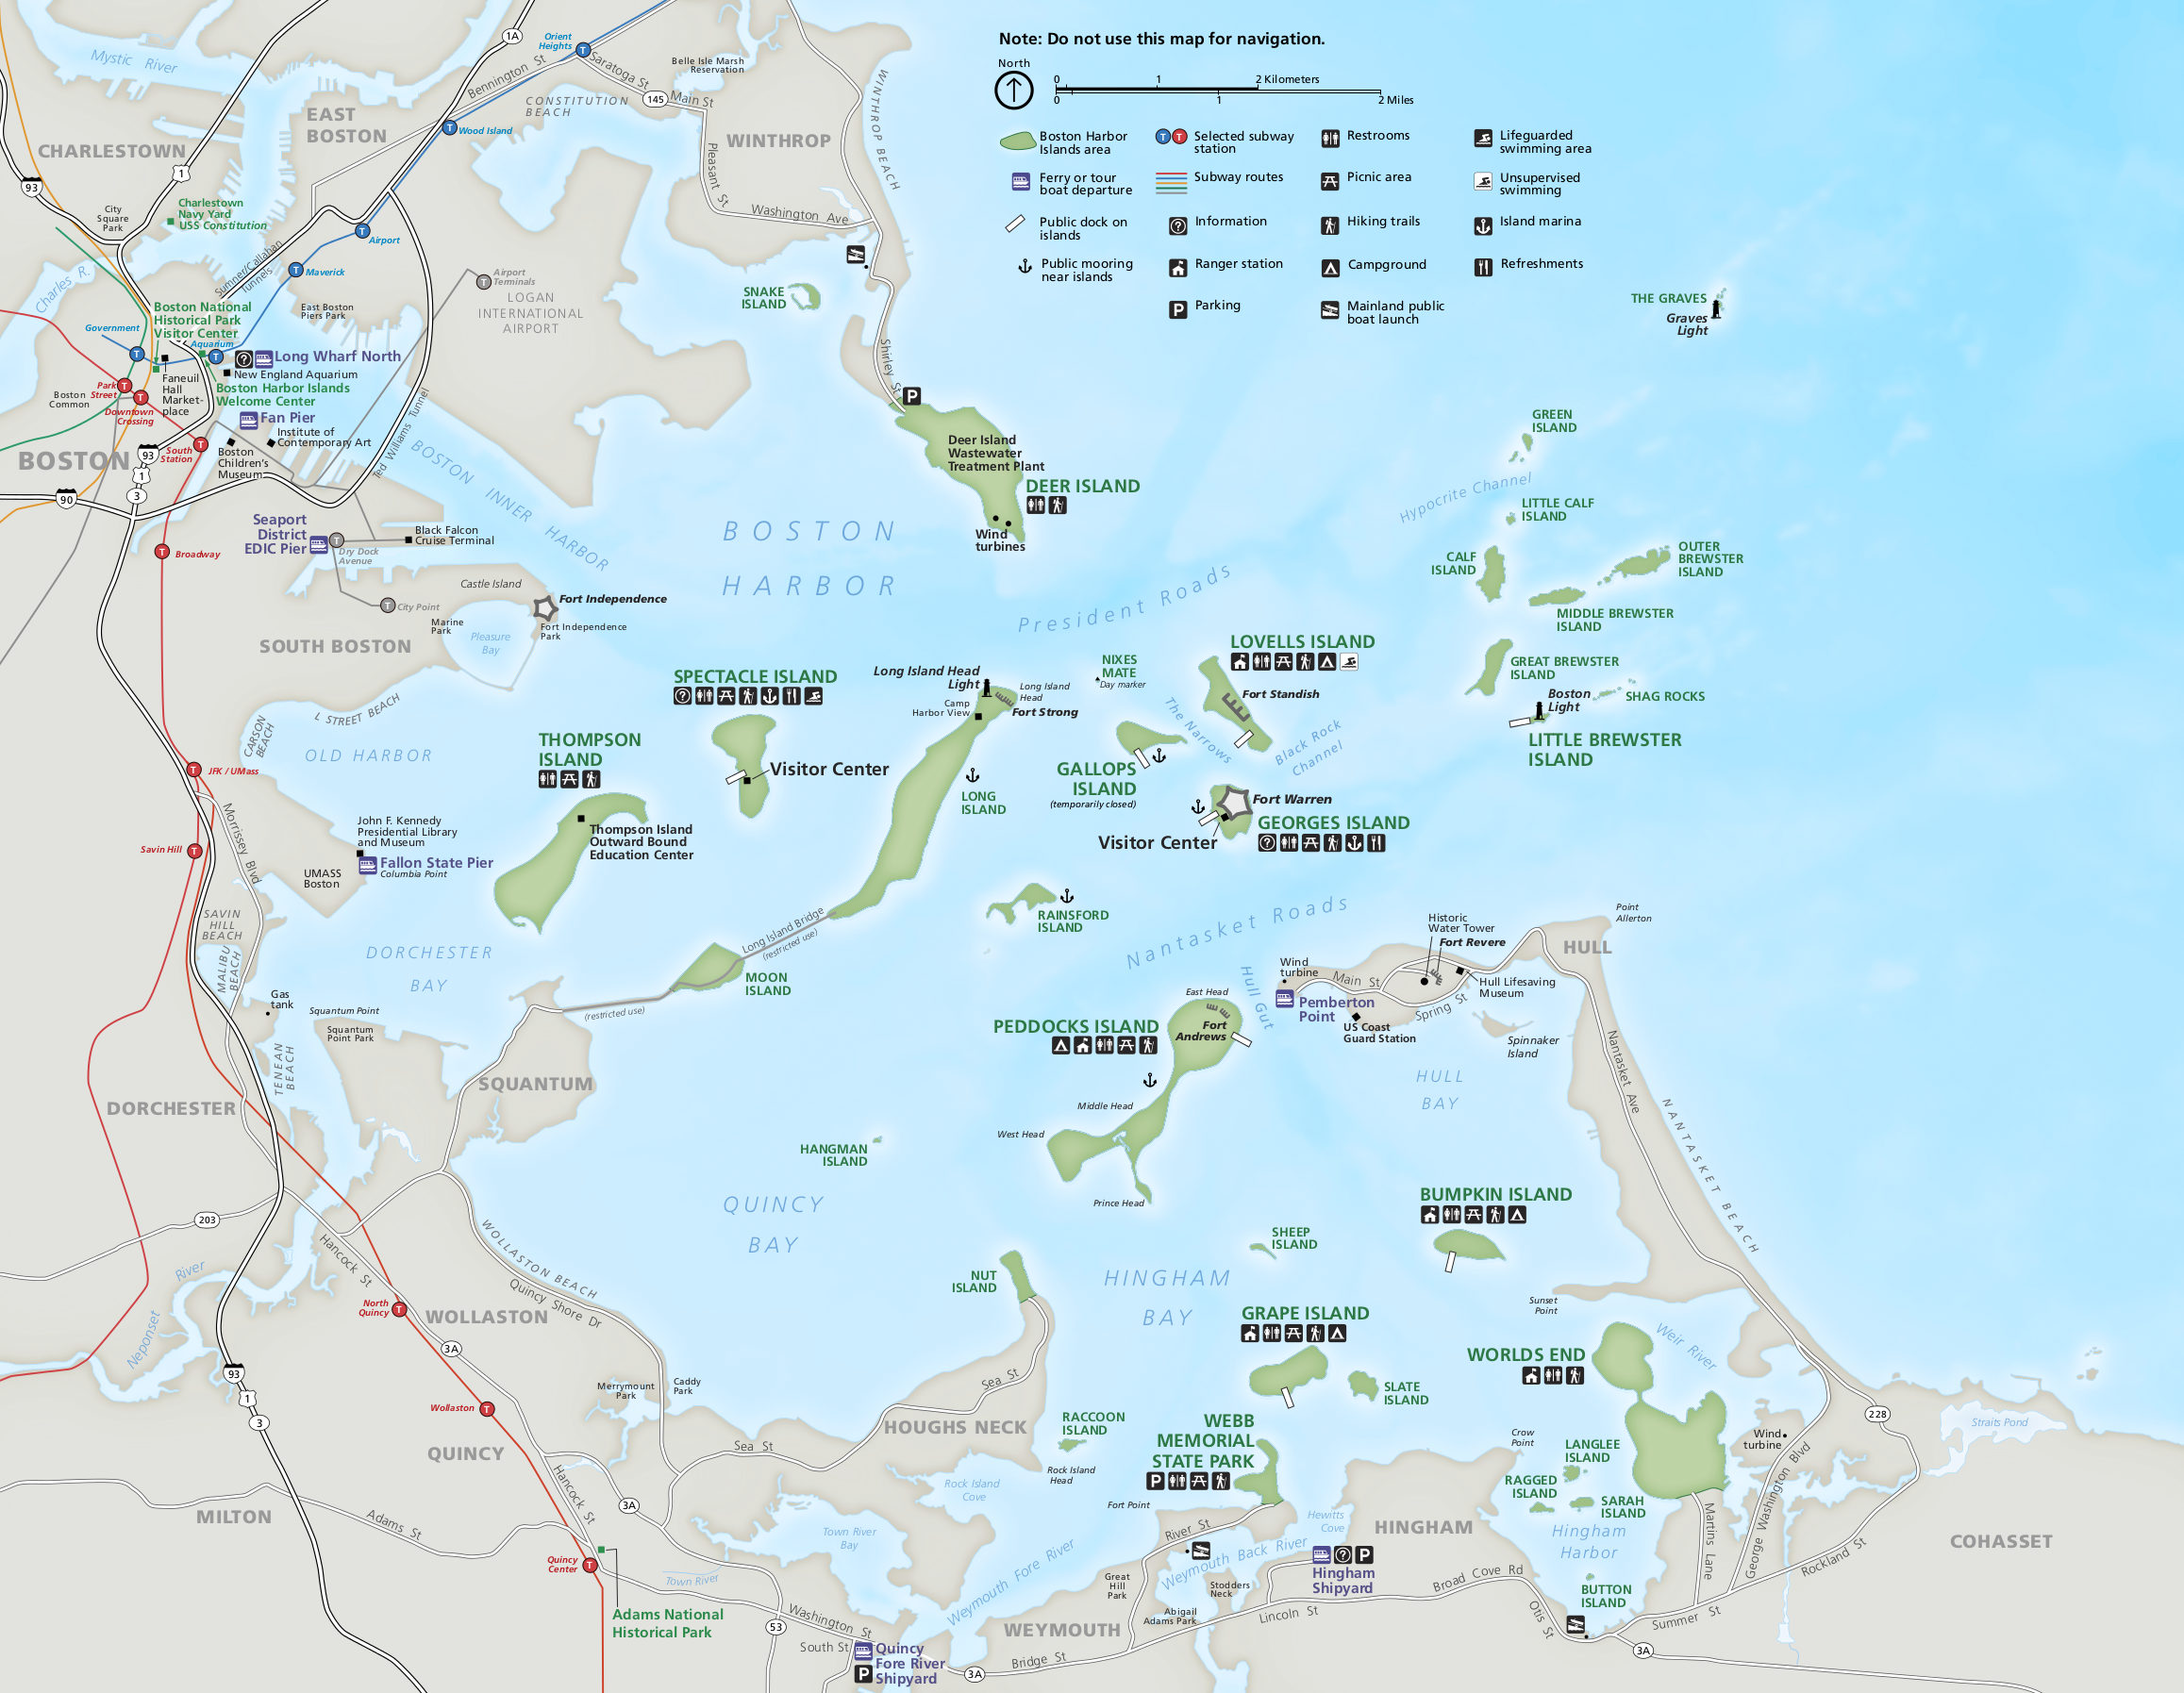 Boston Harbor Islands map with labels